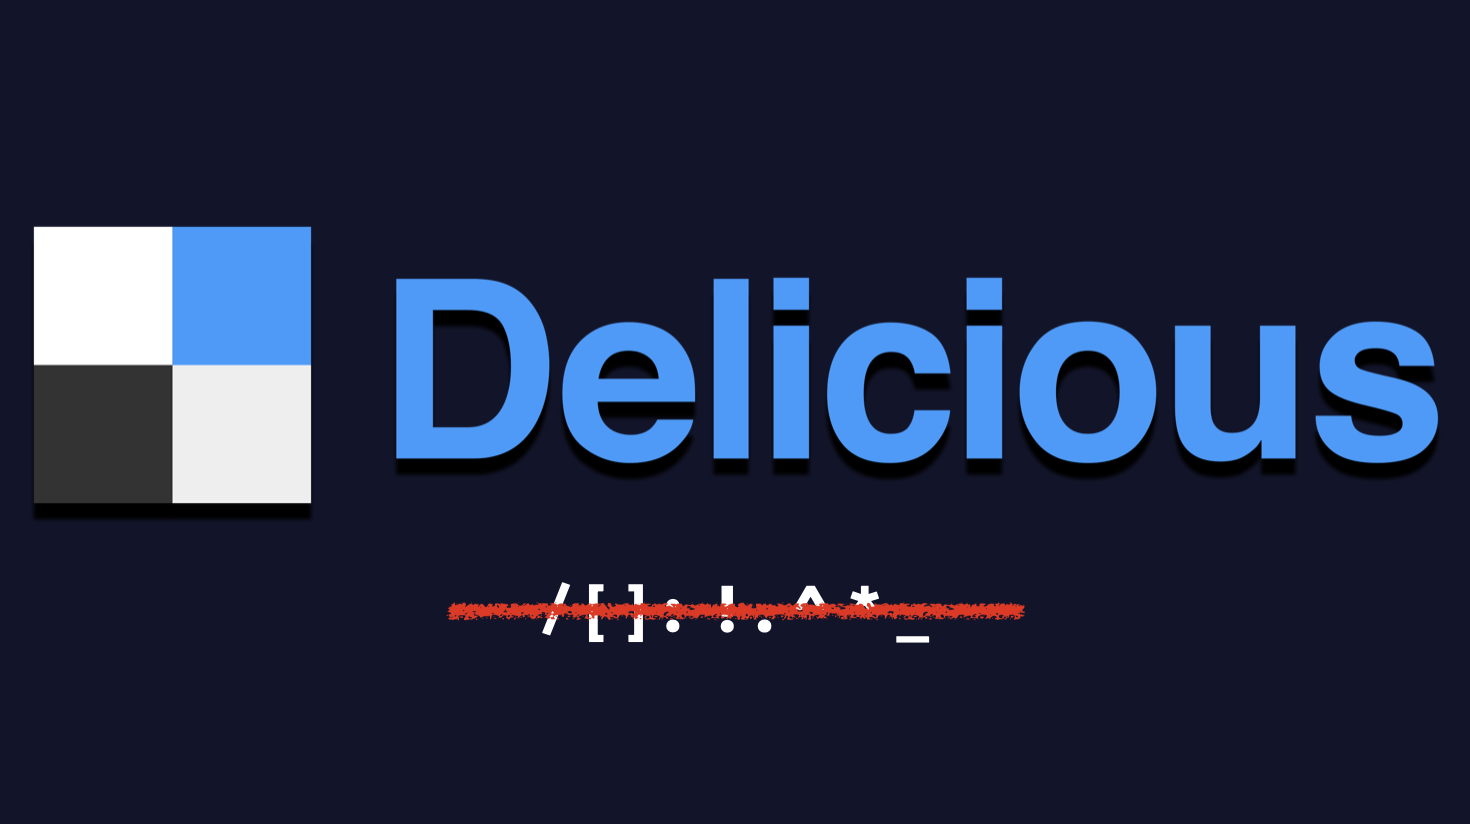 Delicious' logo, along with the slash, exclamation mark, and other symbols they deleted.